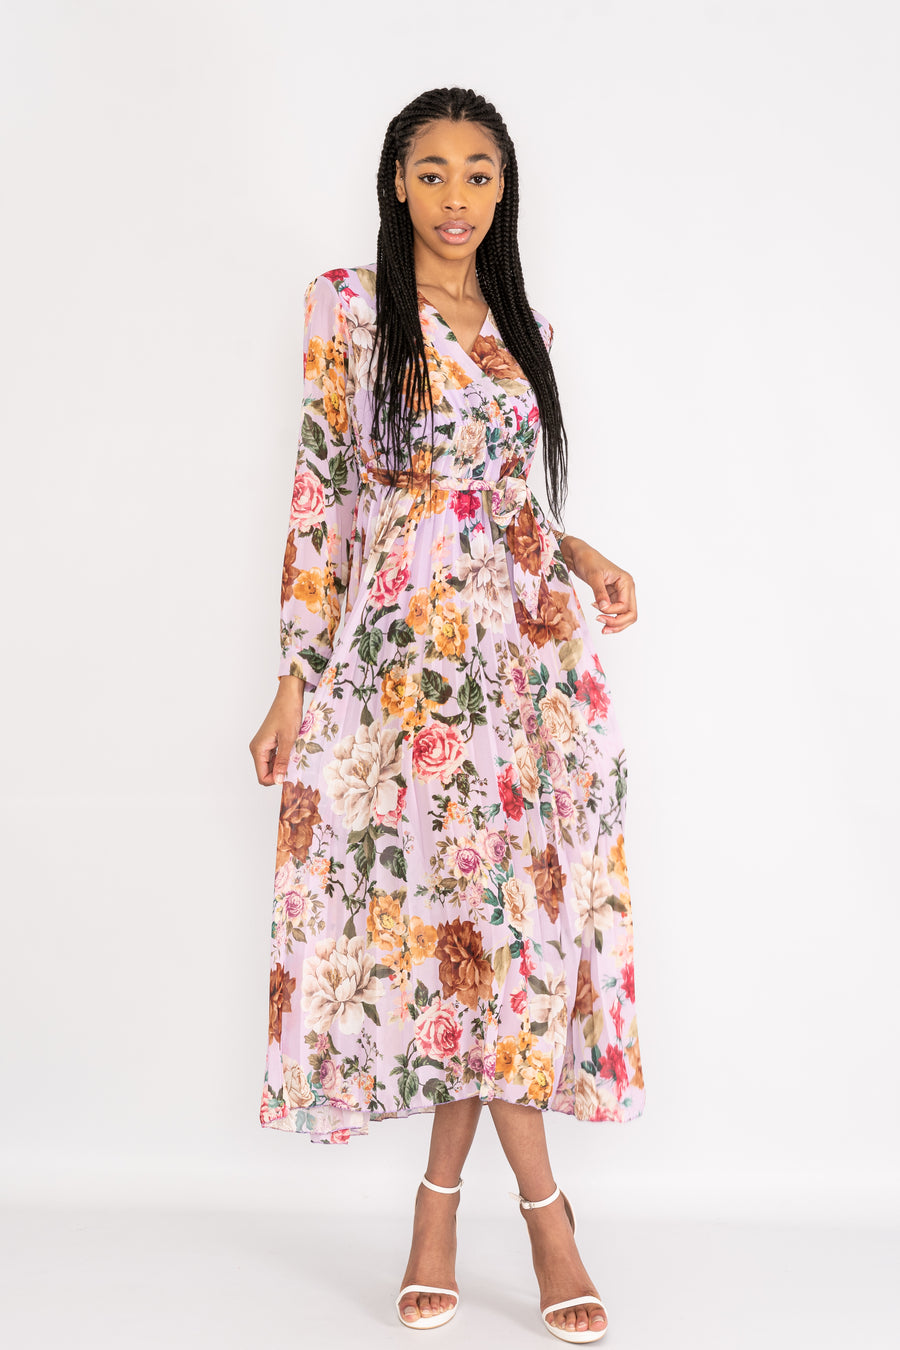 Long sleeved floral dress with belt